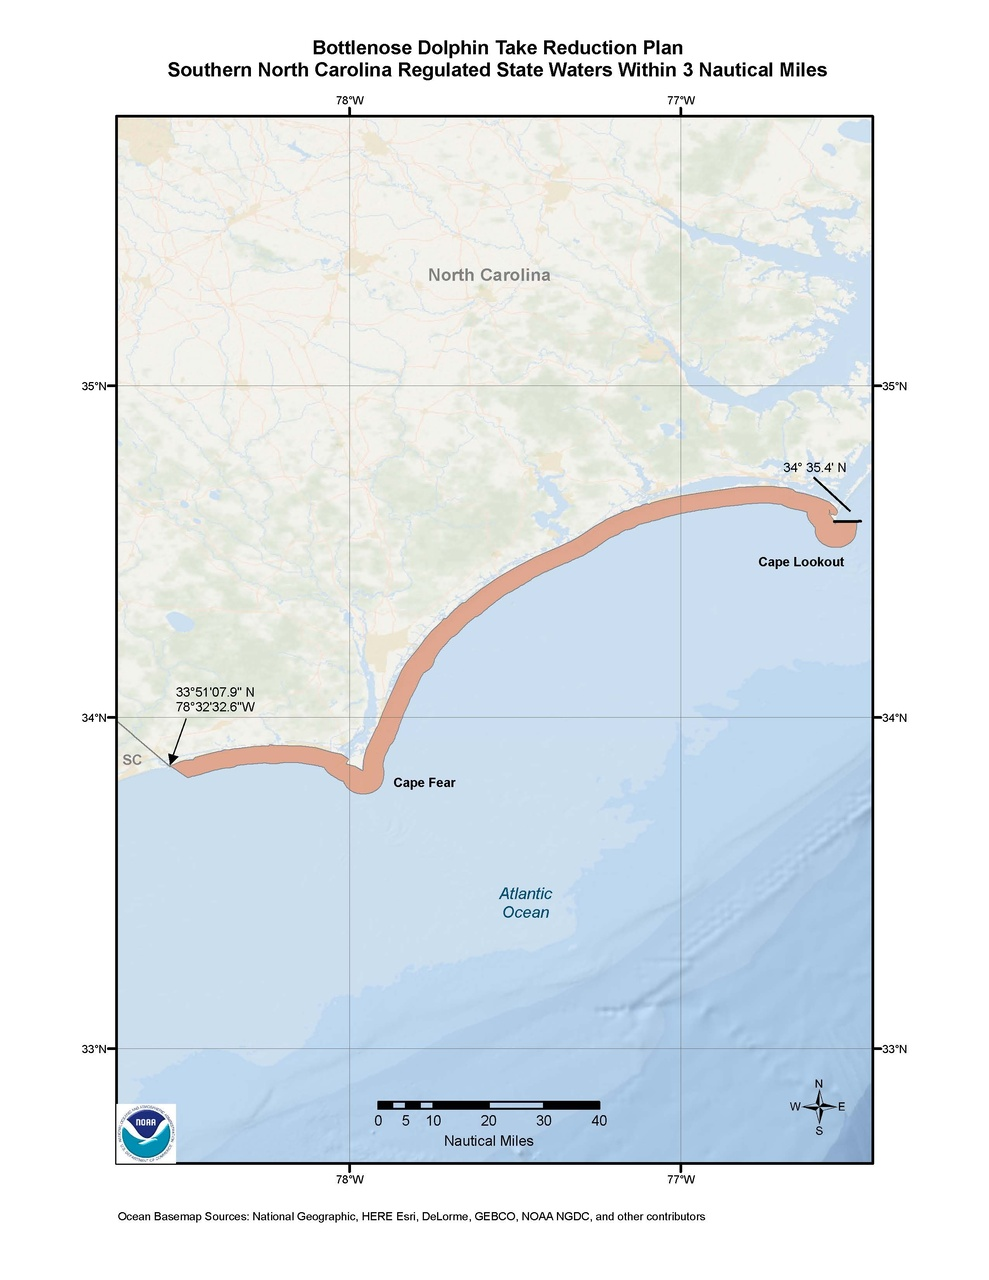 This is a map of the Bottlenose Dolphin Take Reduction Plan for southern North Carolina.